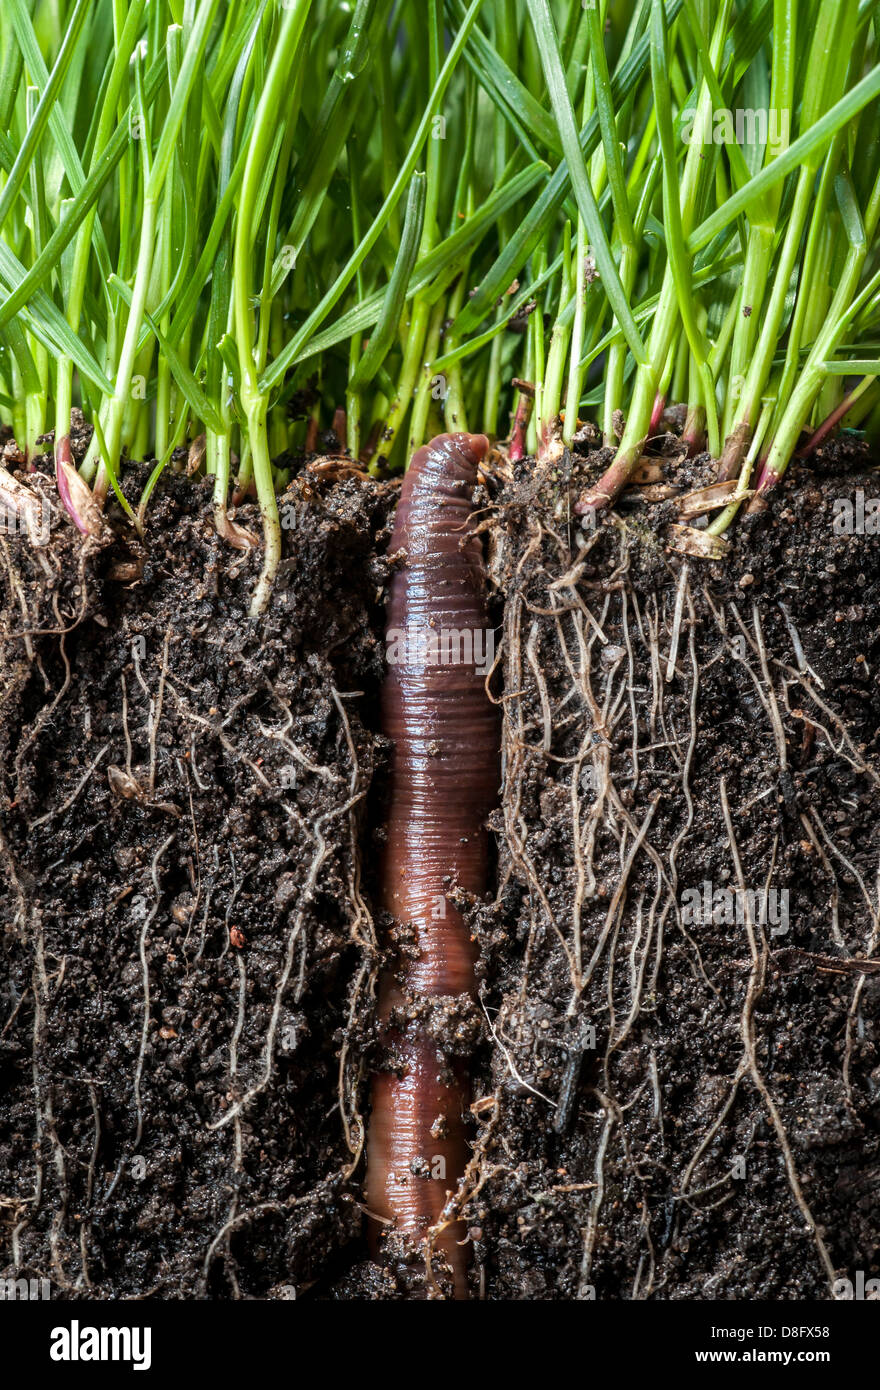 Earthworm emerging from its burrow - Stock Image